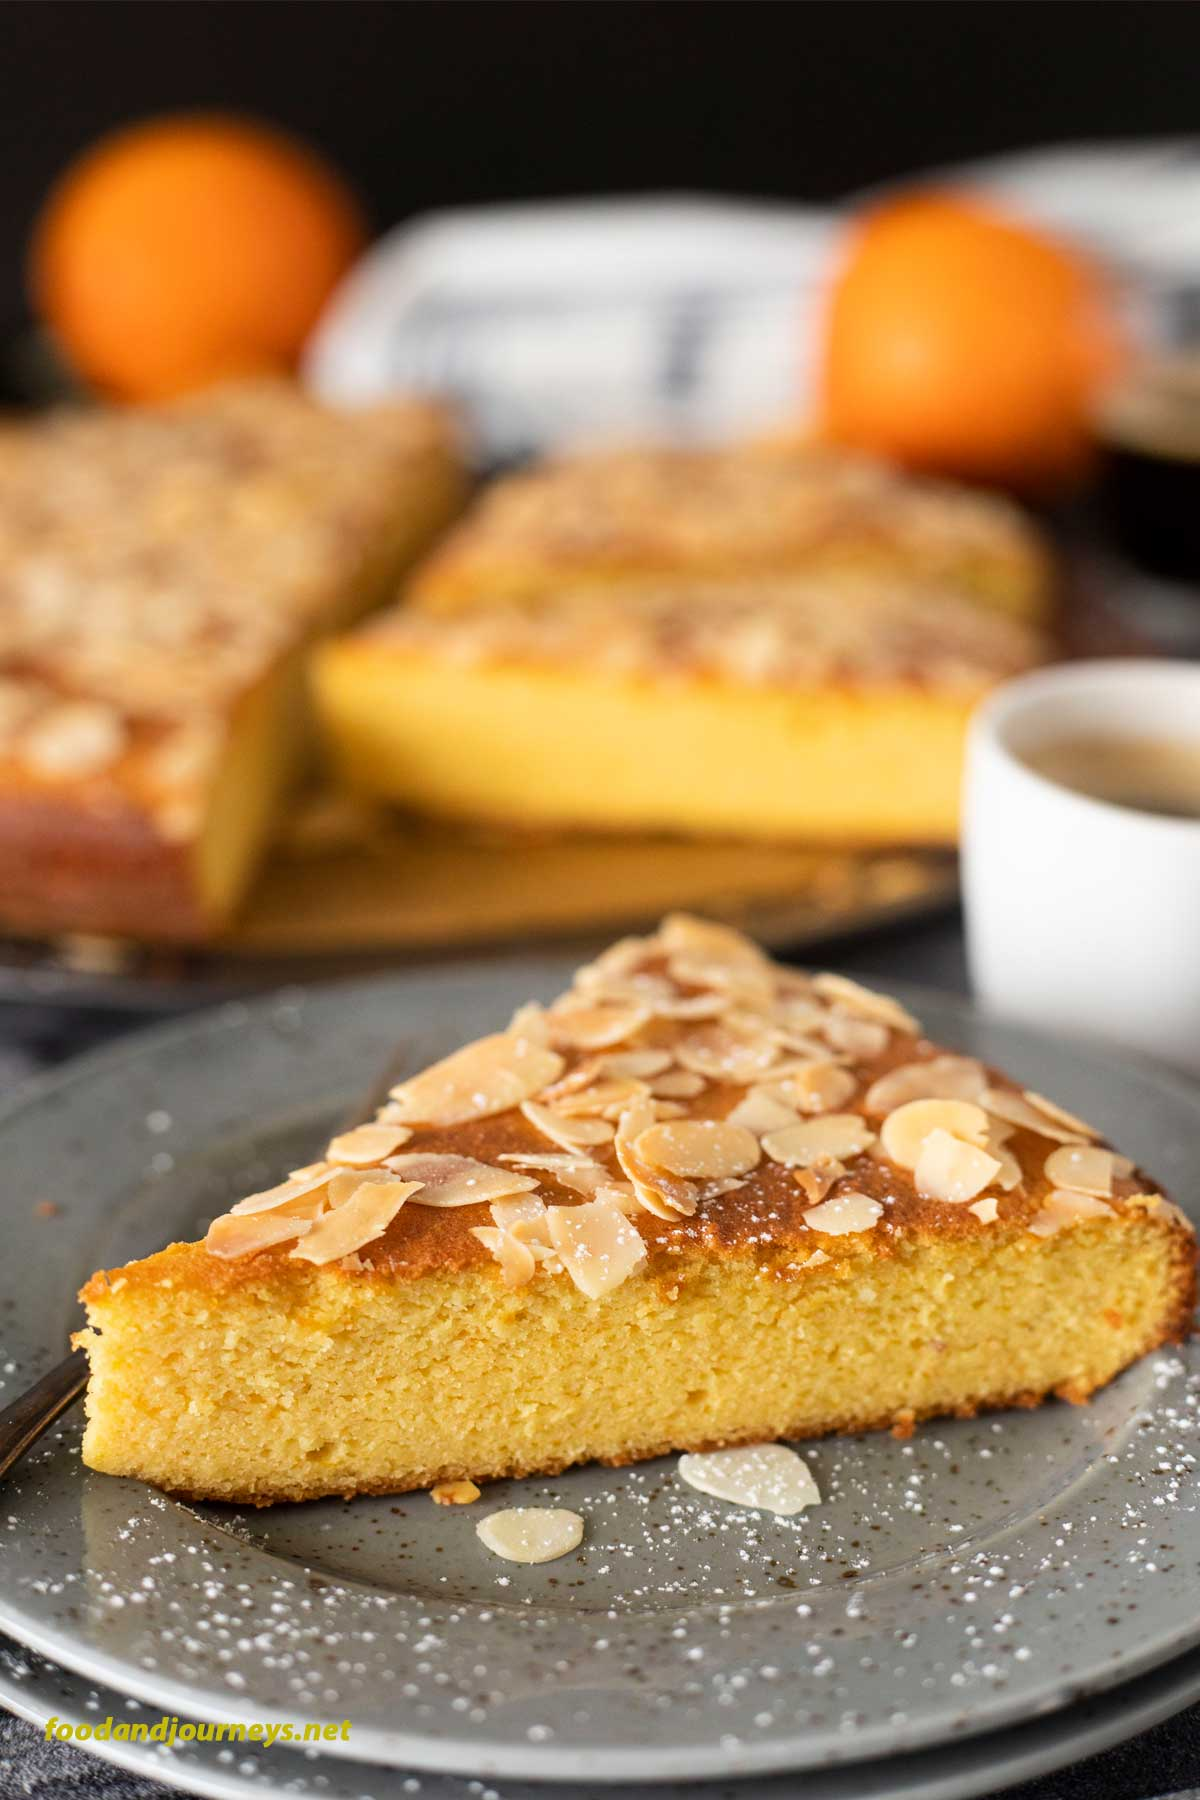 A slice of French Orange and Almond Flourless Cake placed on a plate, ready for serving, with a shot of espresson. The rest f the cake is on the background, as well as a couple of whole oranges.